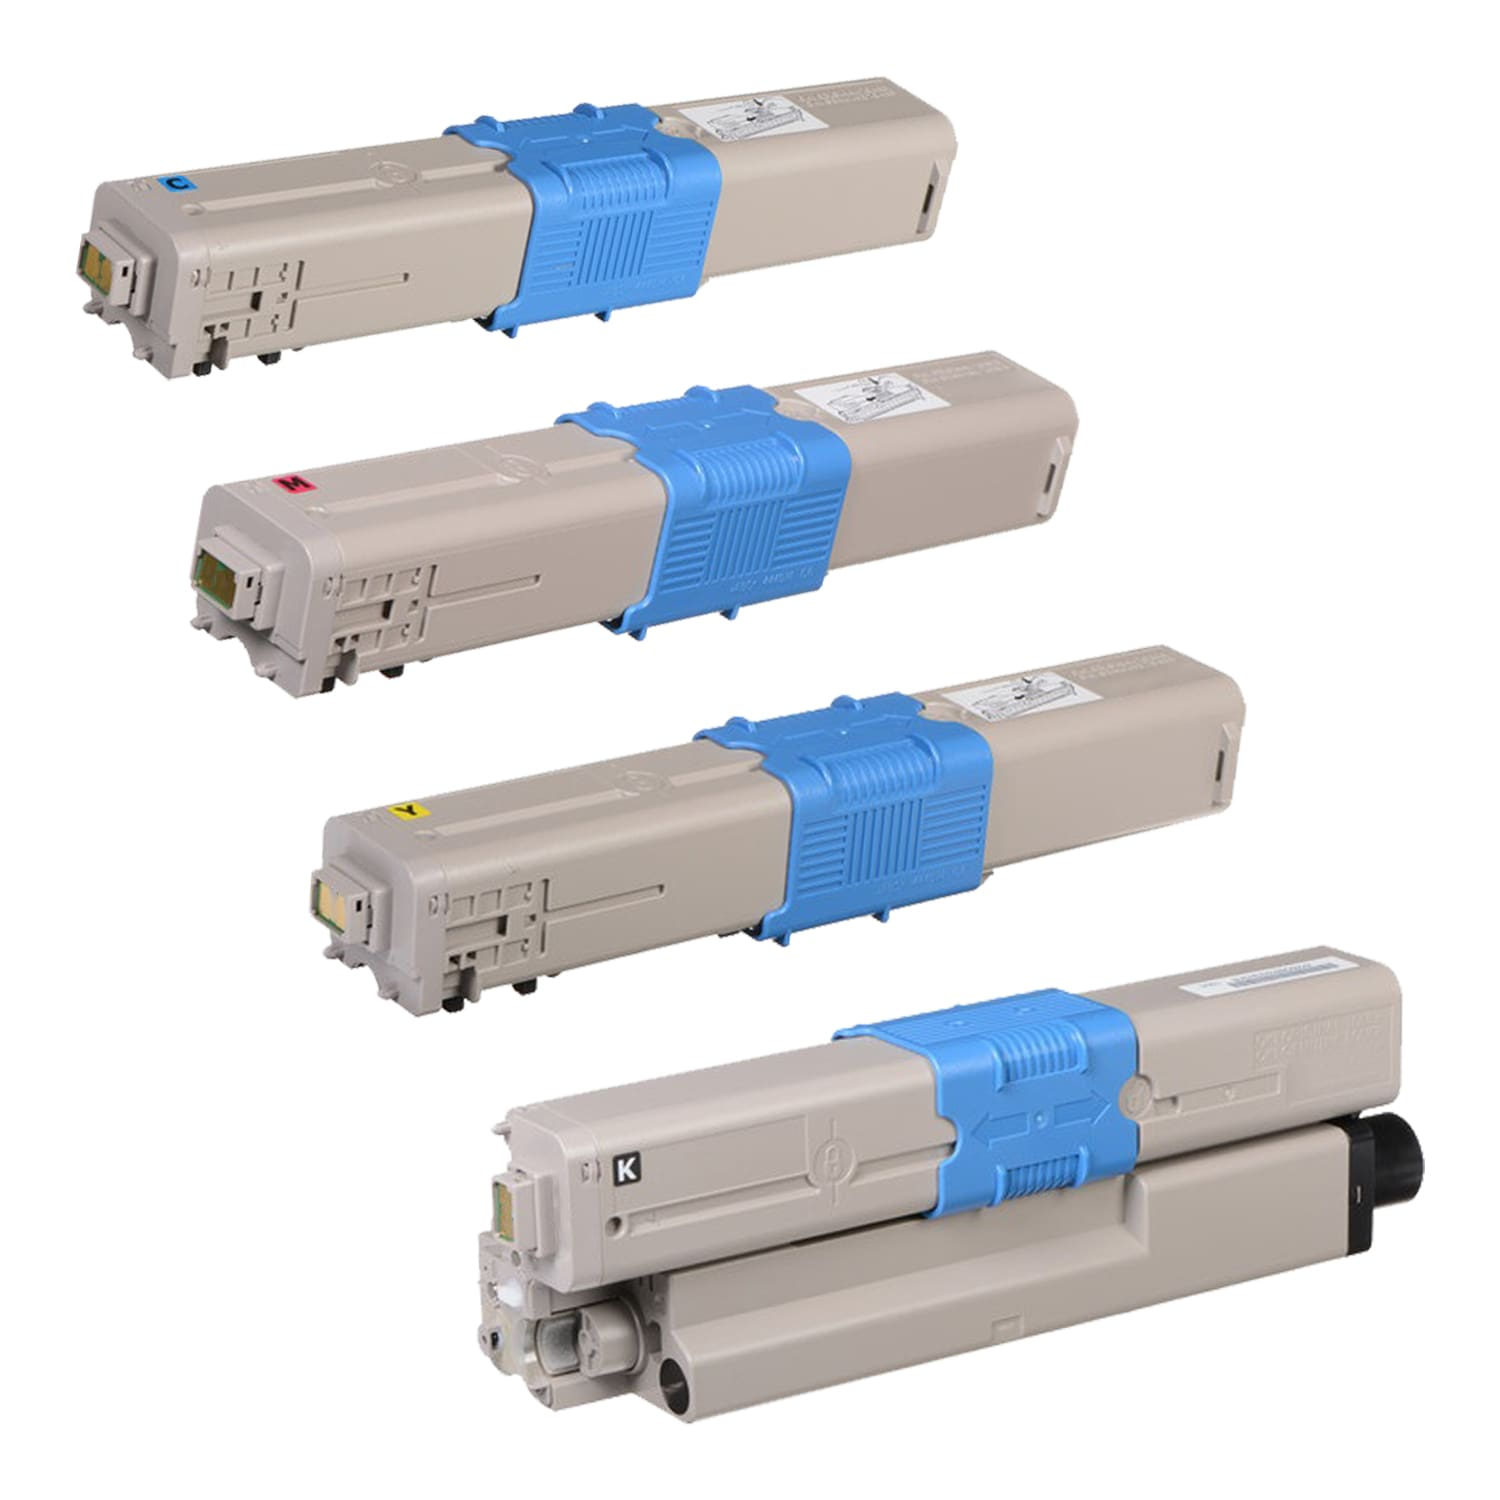 Remanufactured Okidata MC950 Toner Pack - 4 Cartridges